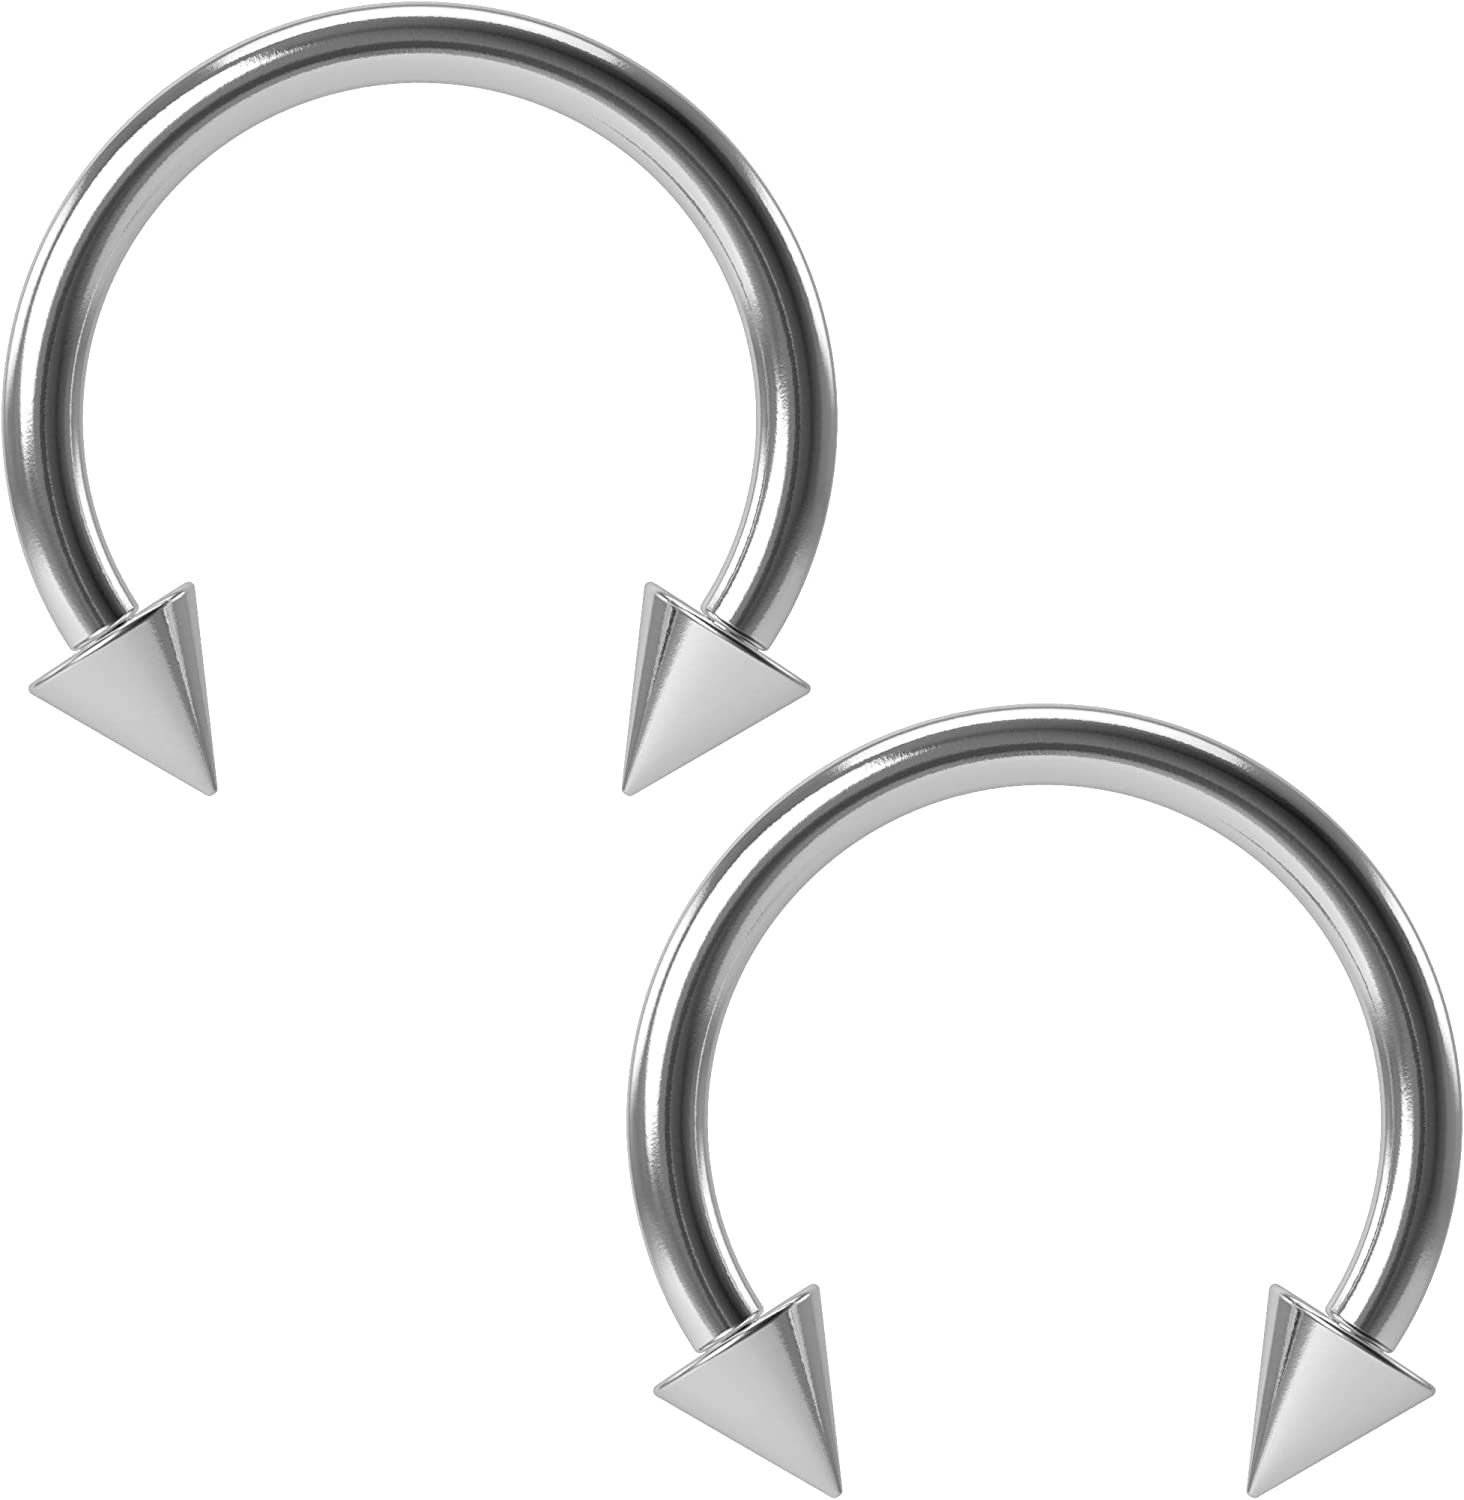 2pc 16g Clear Acrylic Retainer Circular Barbell Horseshoe Conch Auricle Gauge Ring Piercing Jewelry